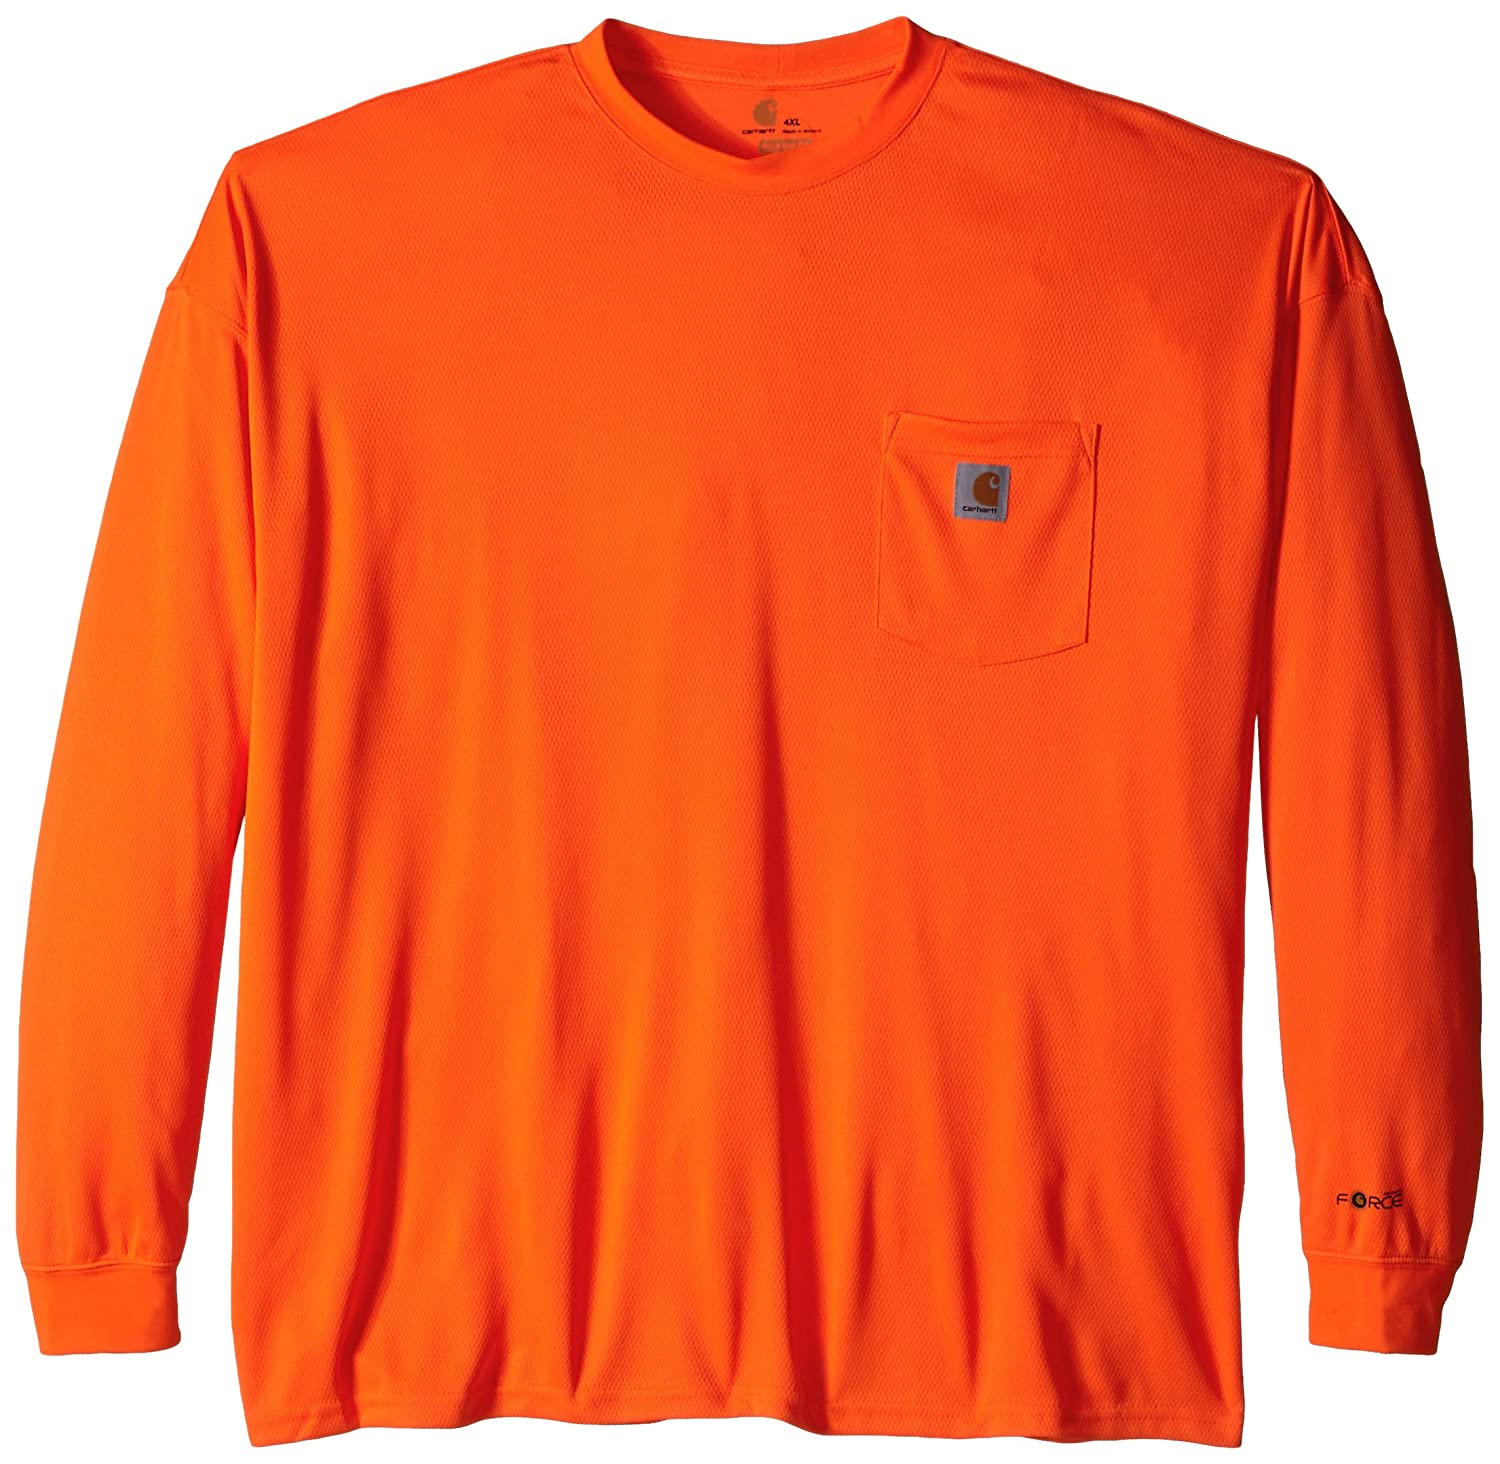 Carhartt Men's Big & Tall High Visibility Force Color Enhanced Long Sleeve T-Shirt Carhartt Sportswear - Mens 100494